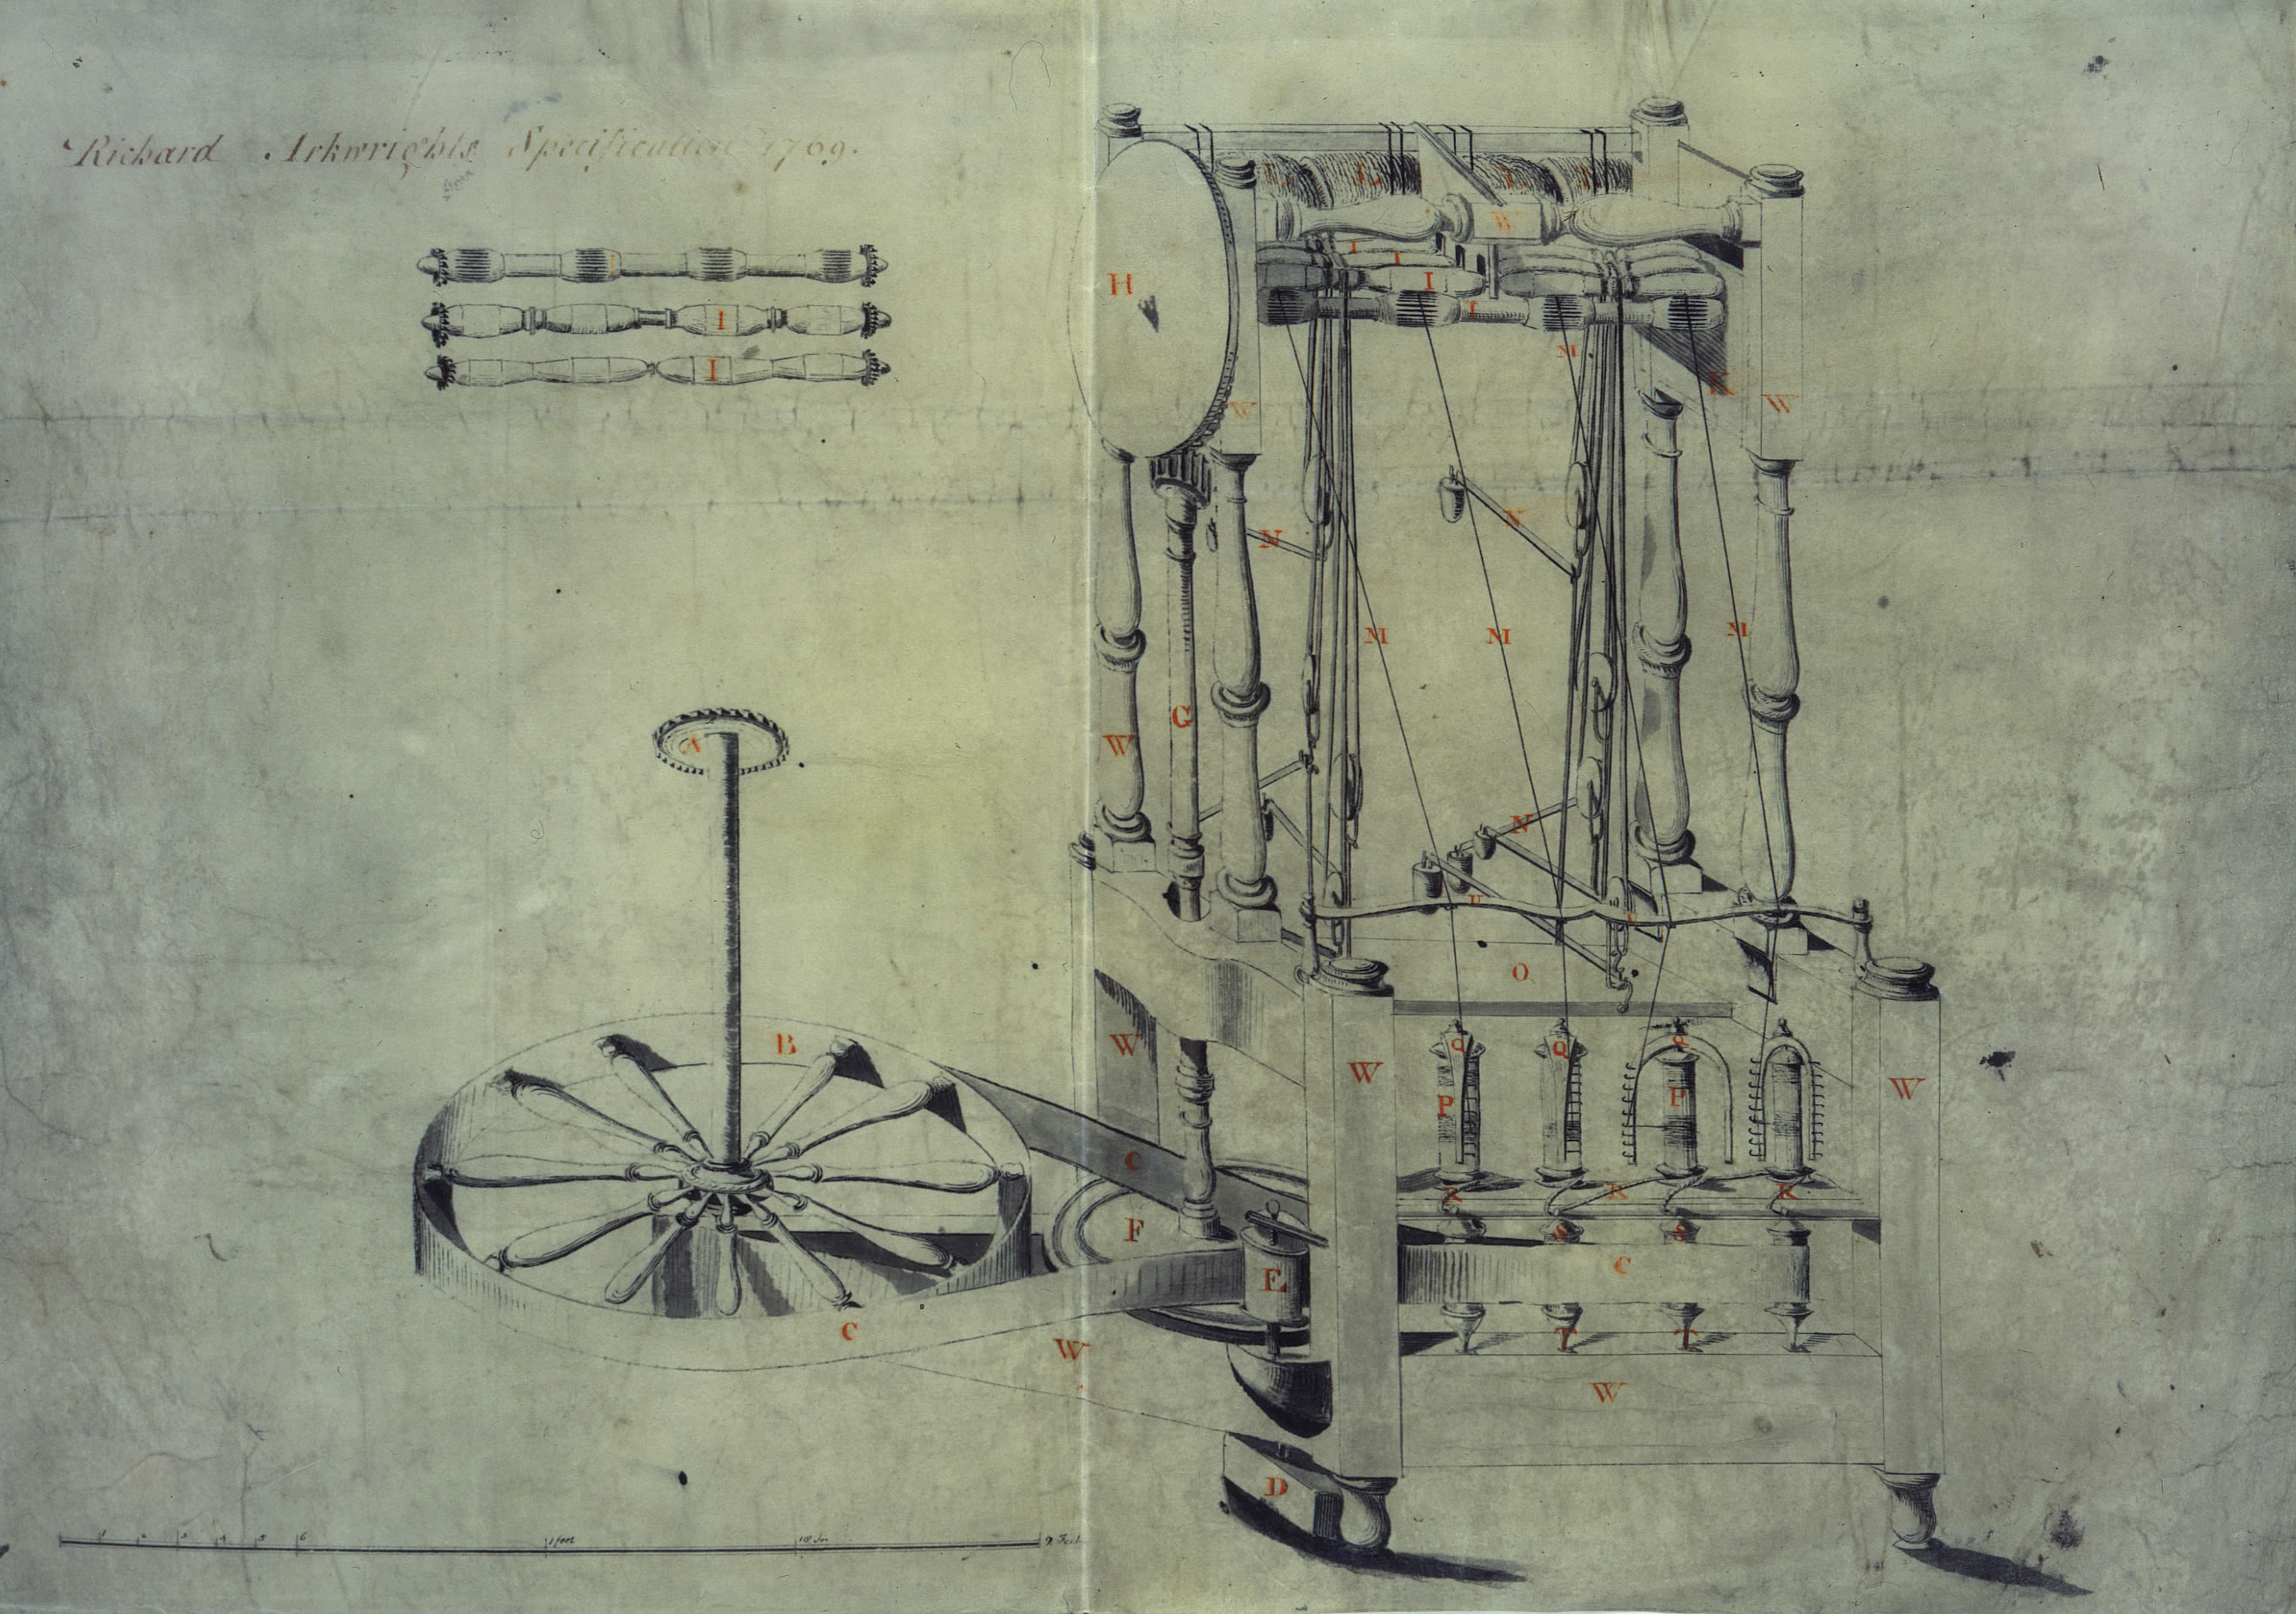 "inventions of the 18th century ""inventions and patents"" is the first of wipo's learn from the past, create the  future  to be introduced to the west (via arab traders) in the 13th century ad   john montagu, the fourth earl of sandwich, was an accomplished 18th  century."